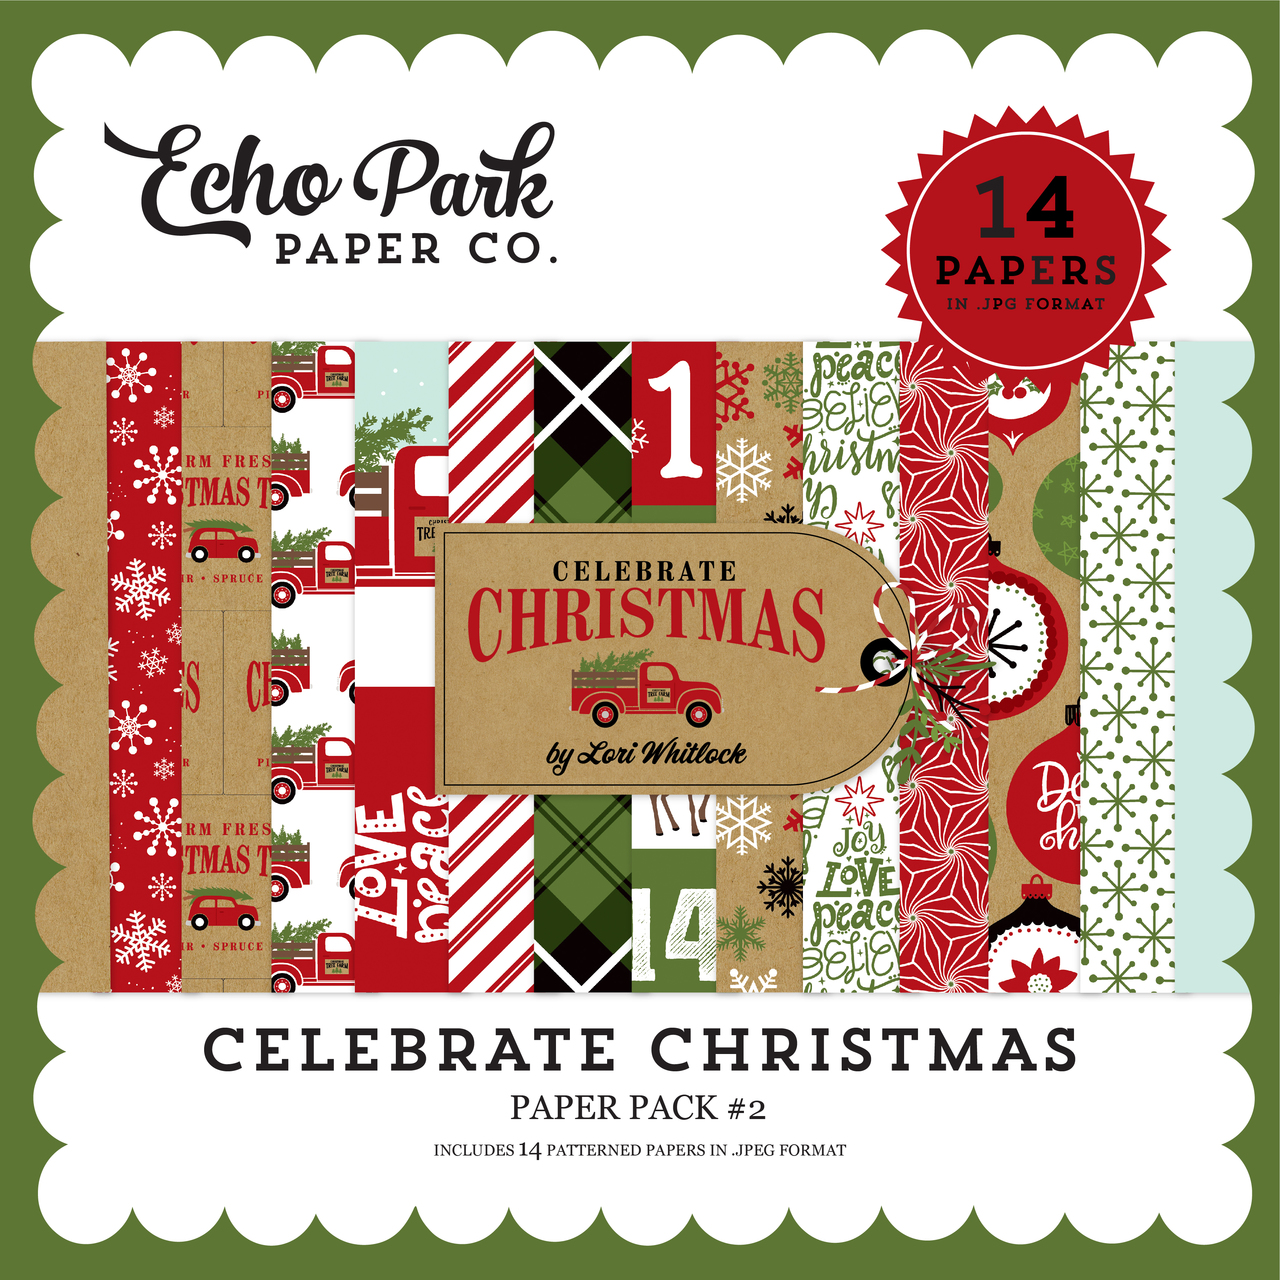 Celebrate Christmas Paper Pack #2